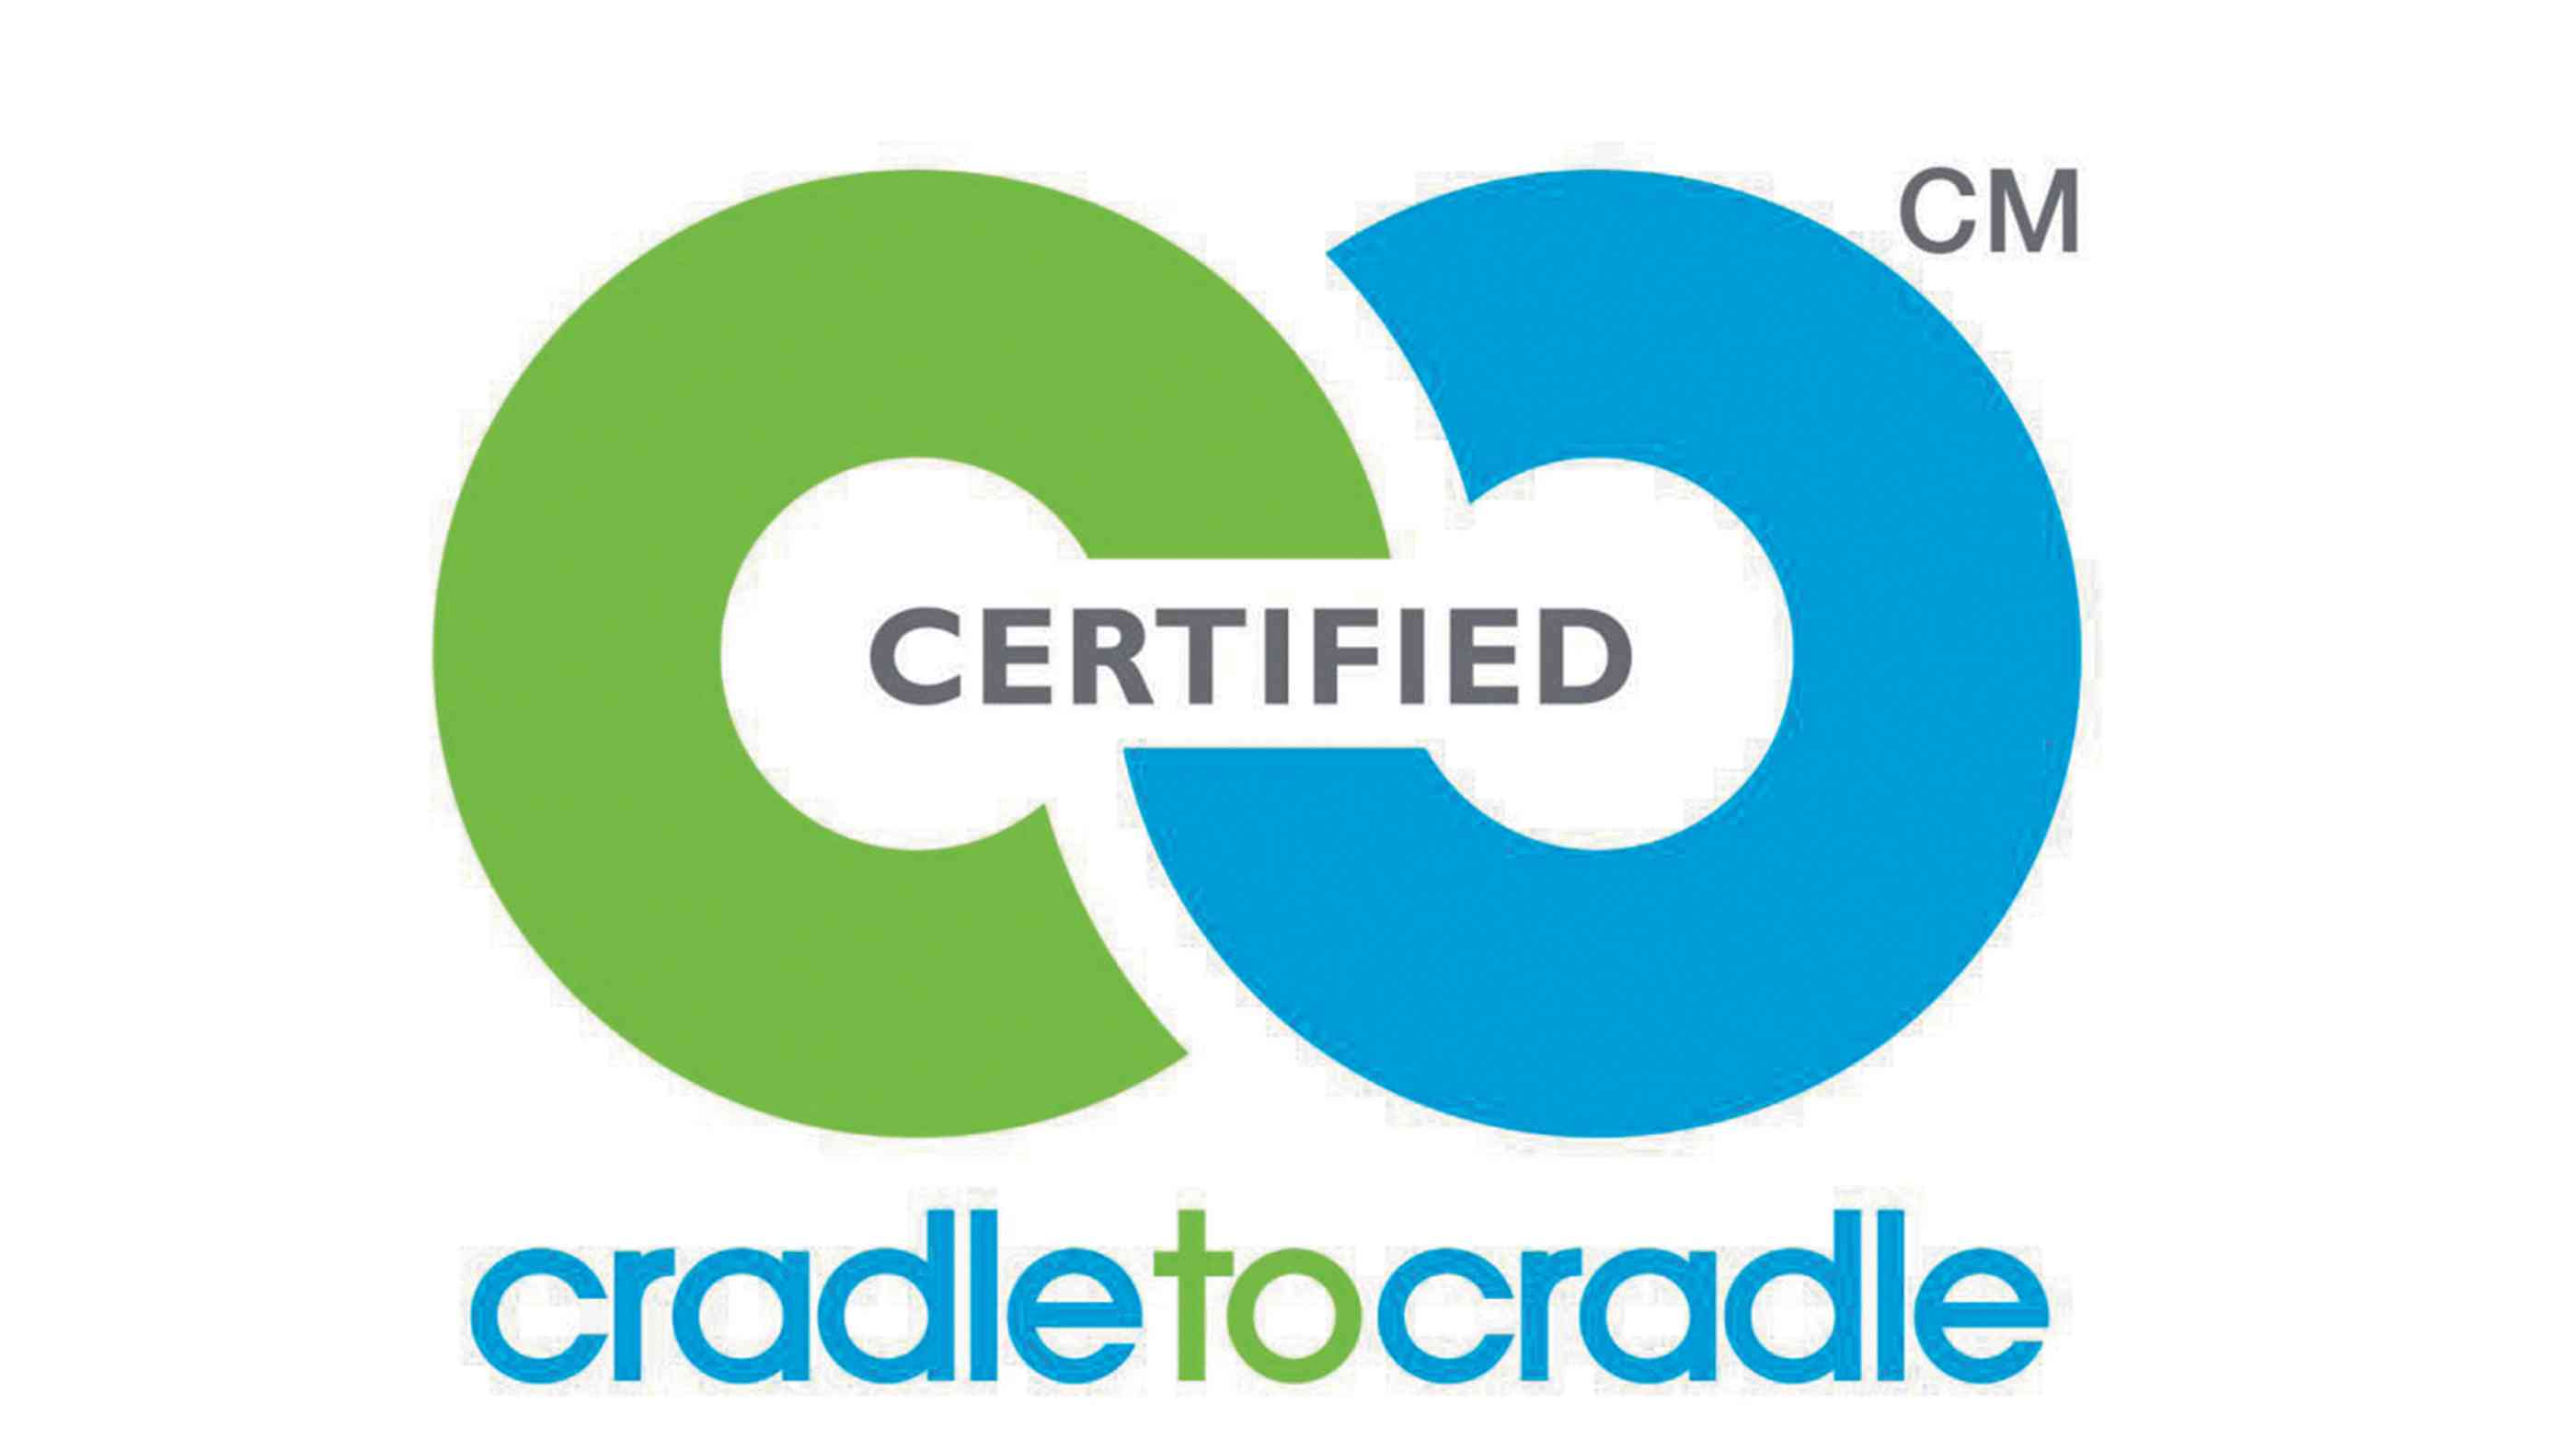 Logo der Organisation Cradle to cradle